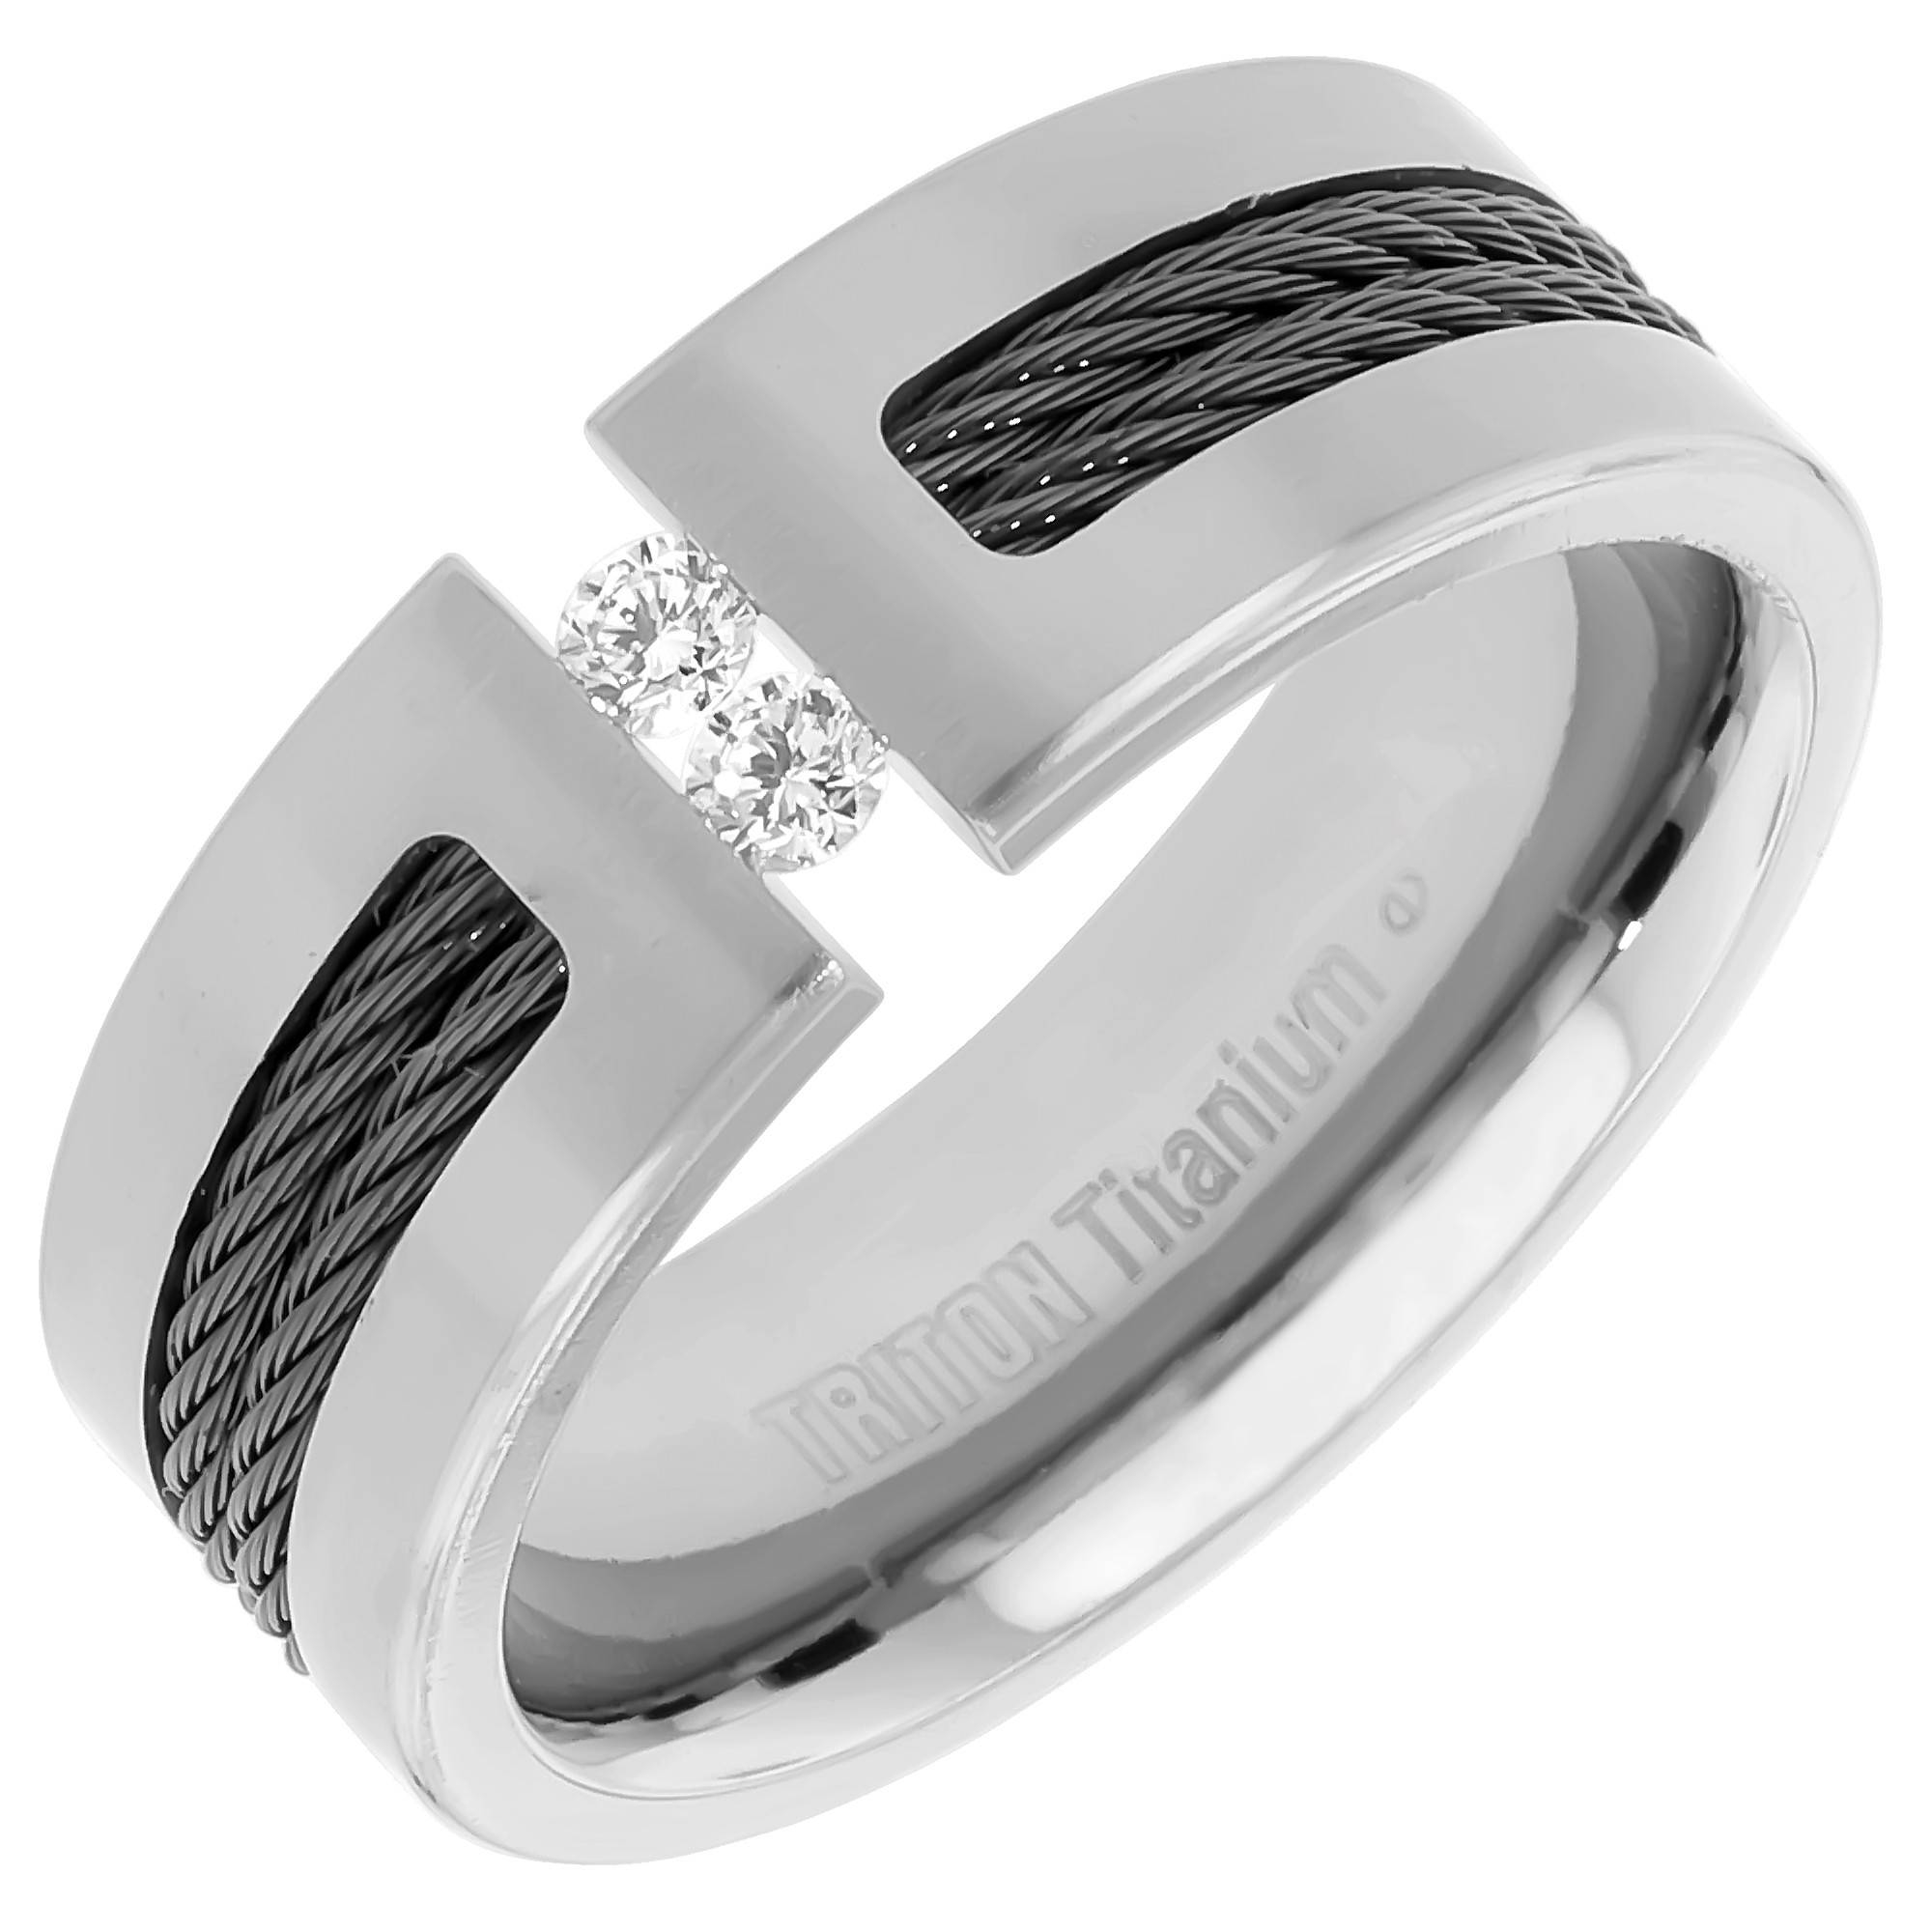 logan bands jan freya ring diamond black fine jewellery quality celebration